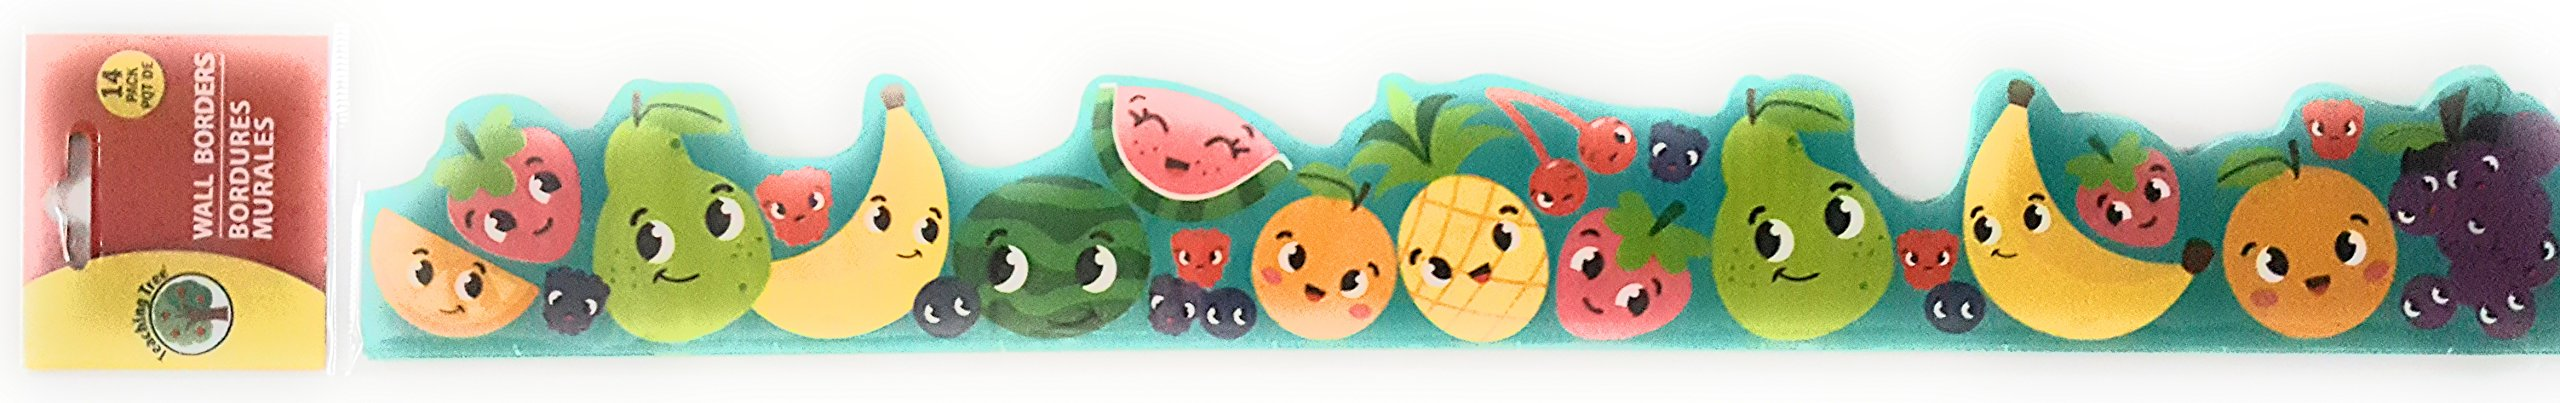 Back to School Teaching Tree Fun Fruit Bulletin Board Set Creative Strips School Office Resources Scholastic Teacher Teacher's Bulletin Trim Wall Border Decal Classroom Decoration